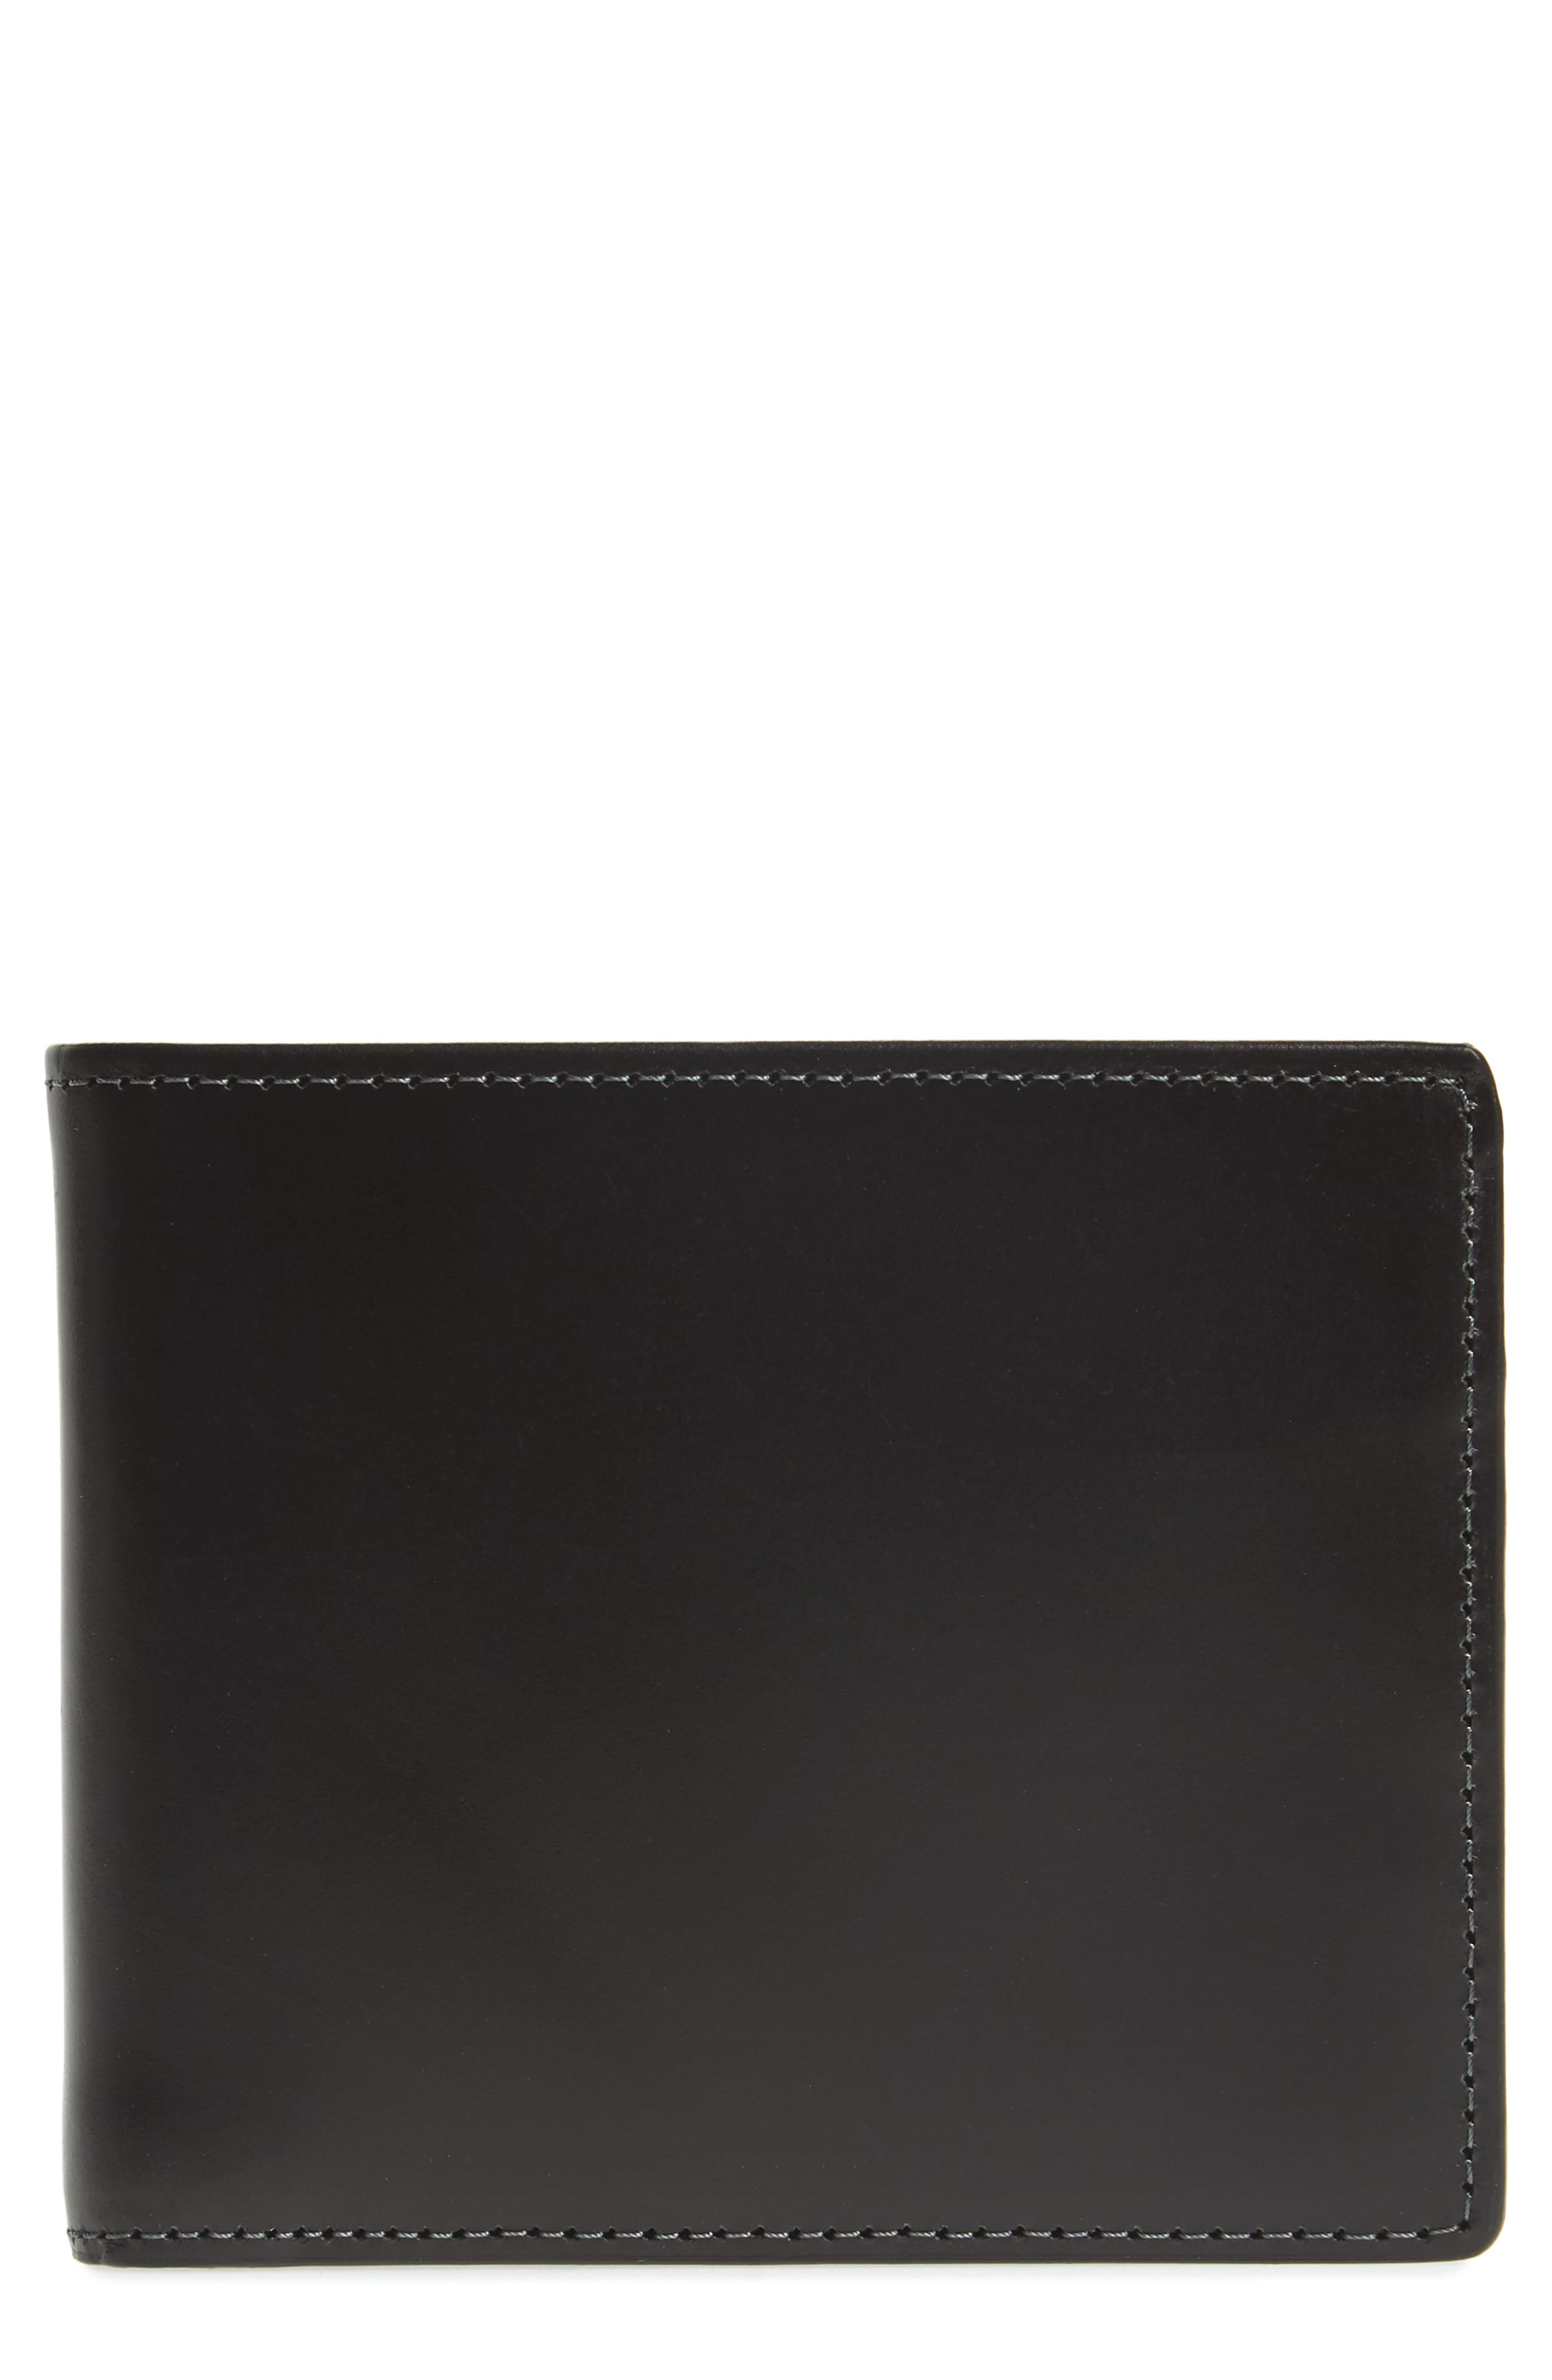 Wyatt Leather Wallet,                         Main,                         color, BLACK